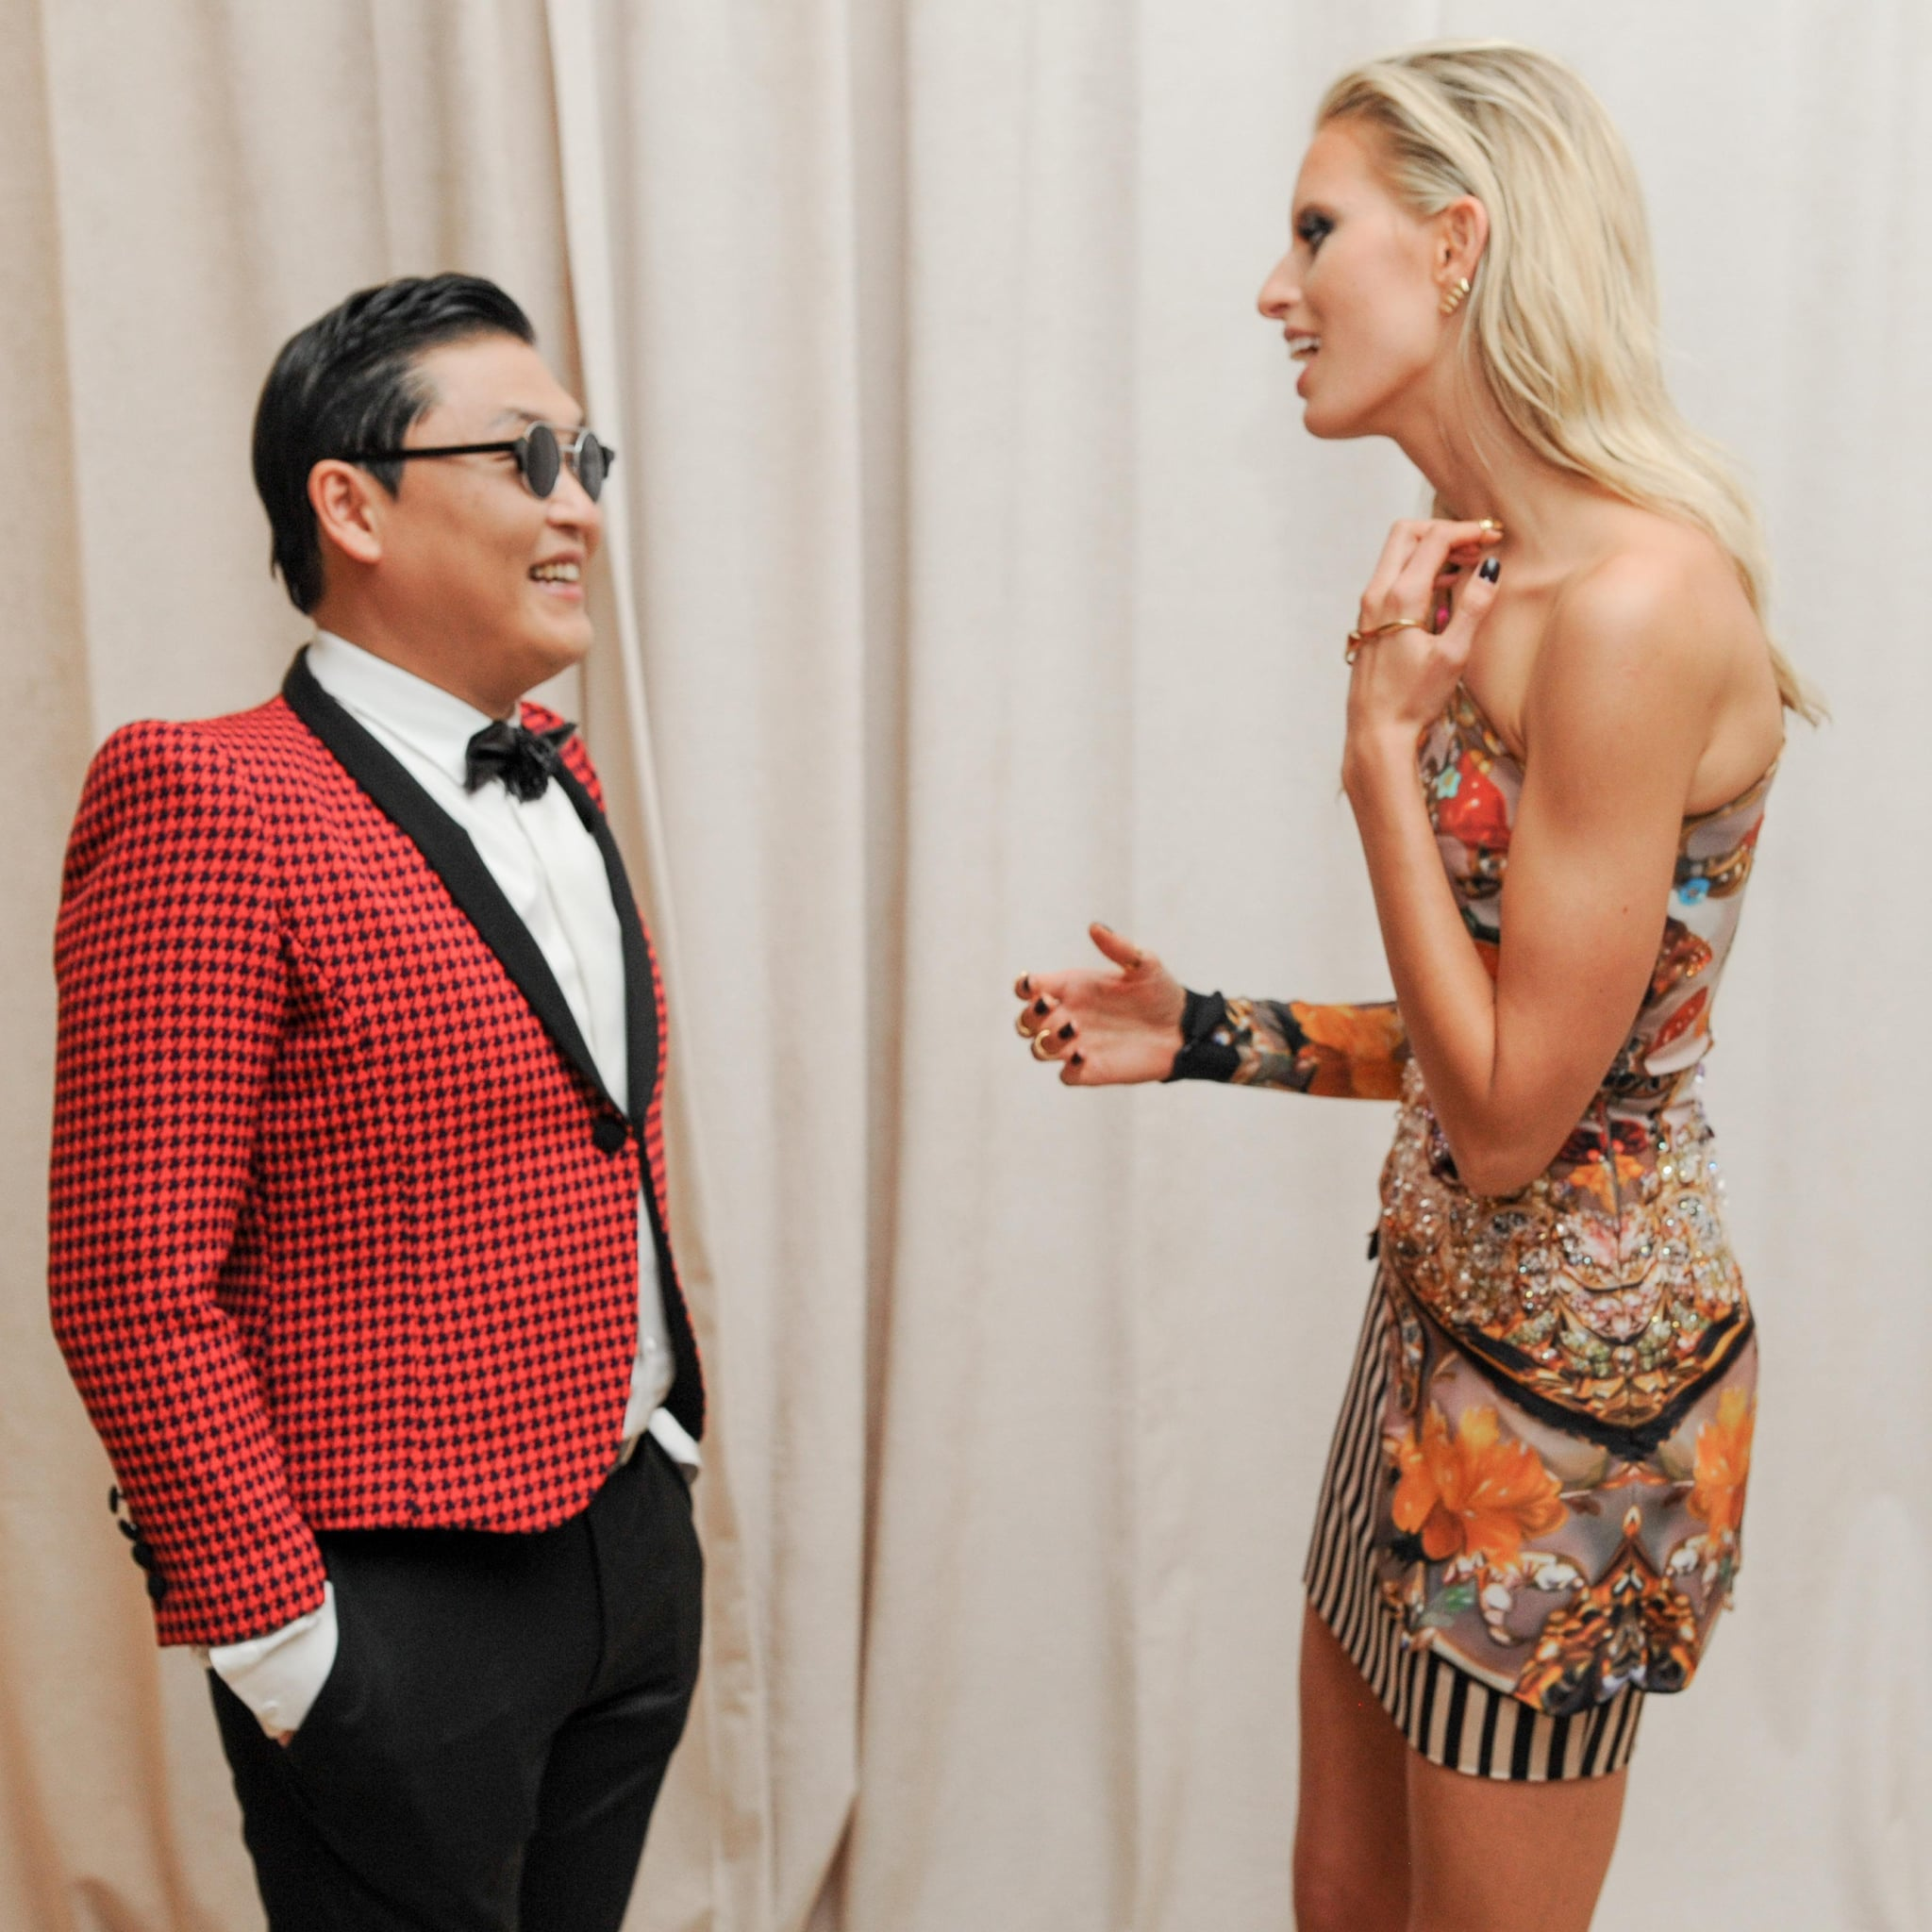 Psy and Karolina Kurkova chatted before heading into dinner at the Met.  Source: Billy Farrell/BFANYC.com